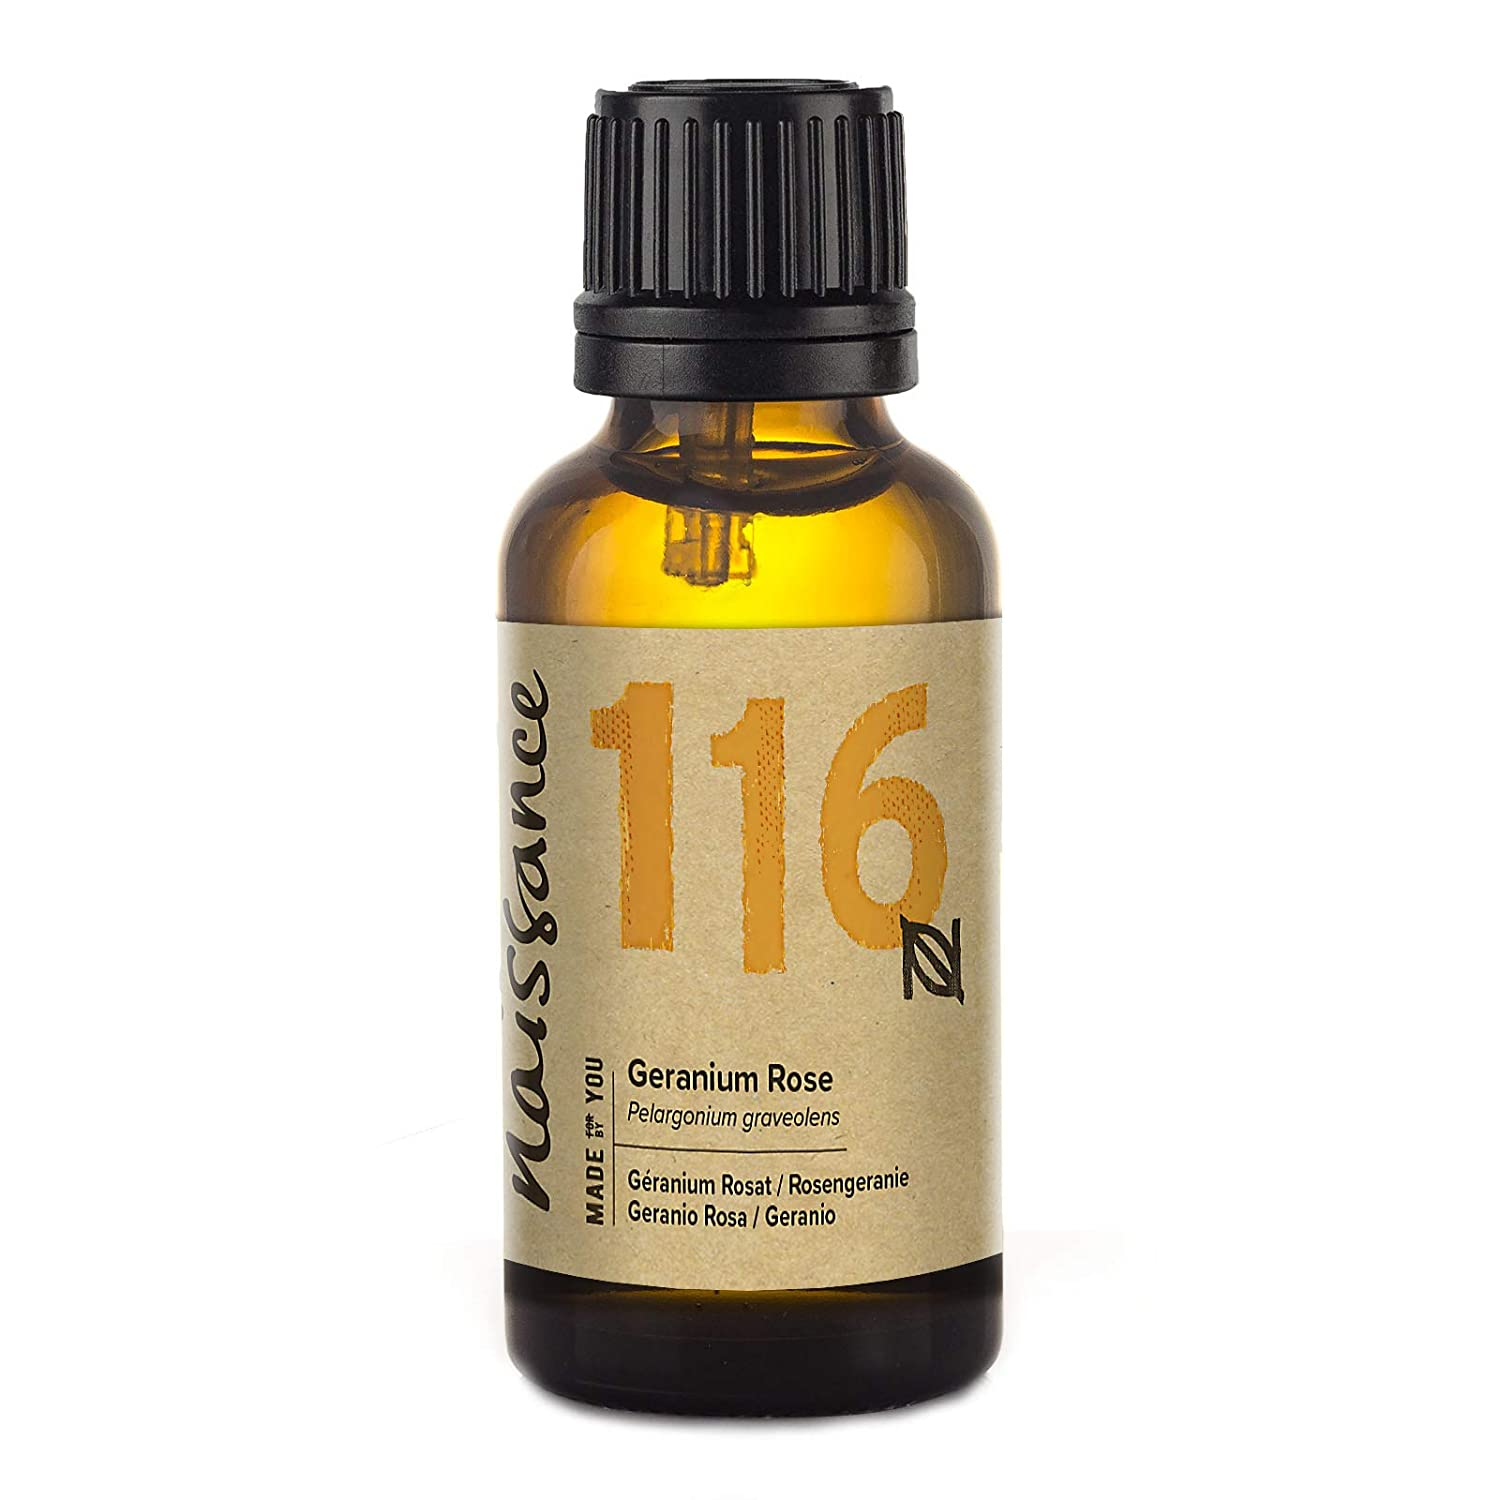 Naissance Geranium Rose Essential Oil (no. 116) 30ml - Pure, Natural, Steam Distilled, Cruelty Free, Vegan and Undiluted - Use in Aromatherapy & Diffusers